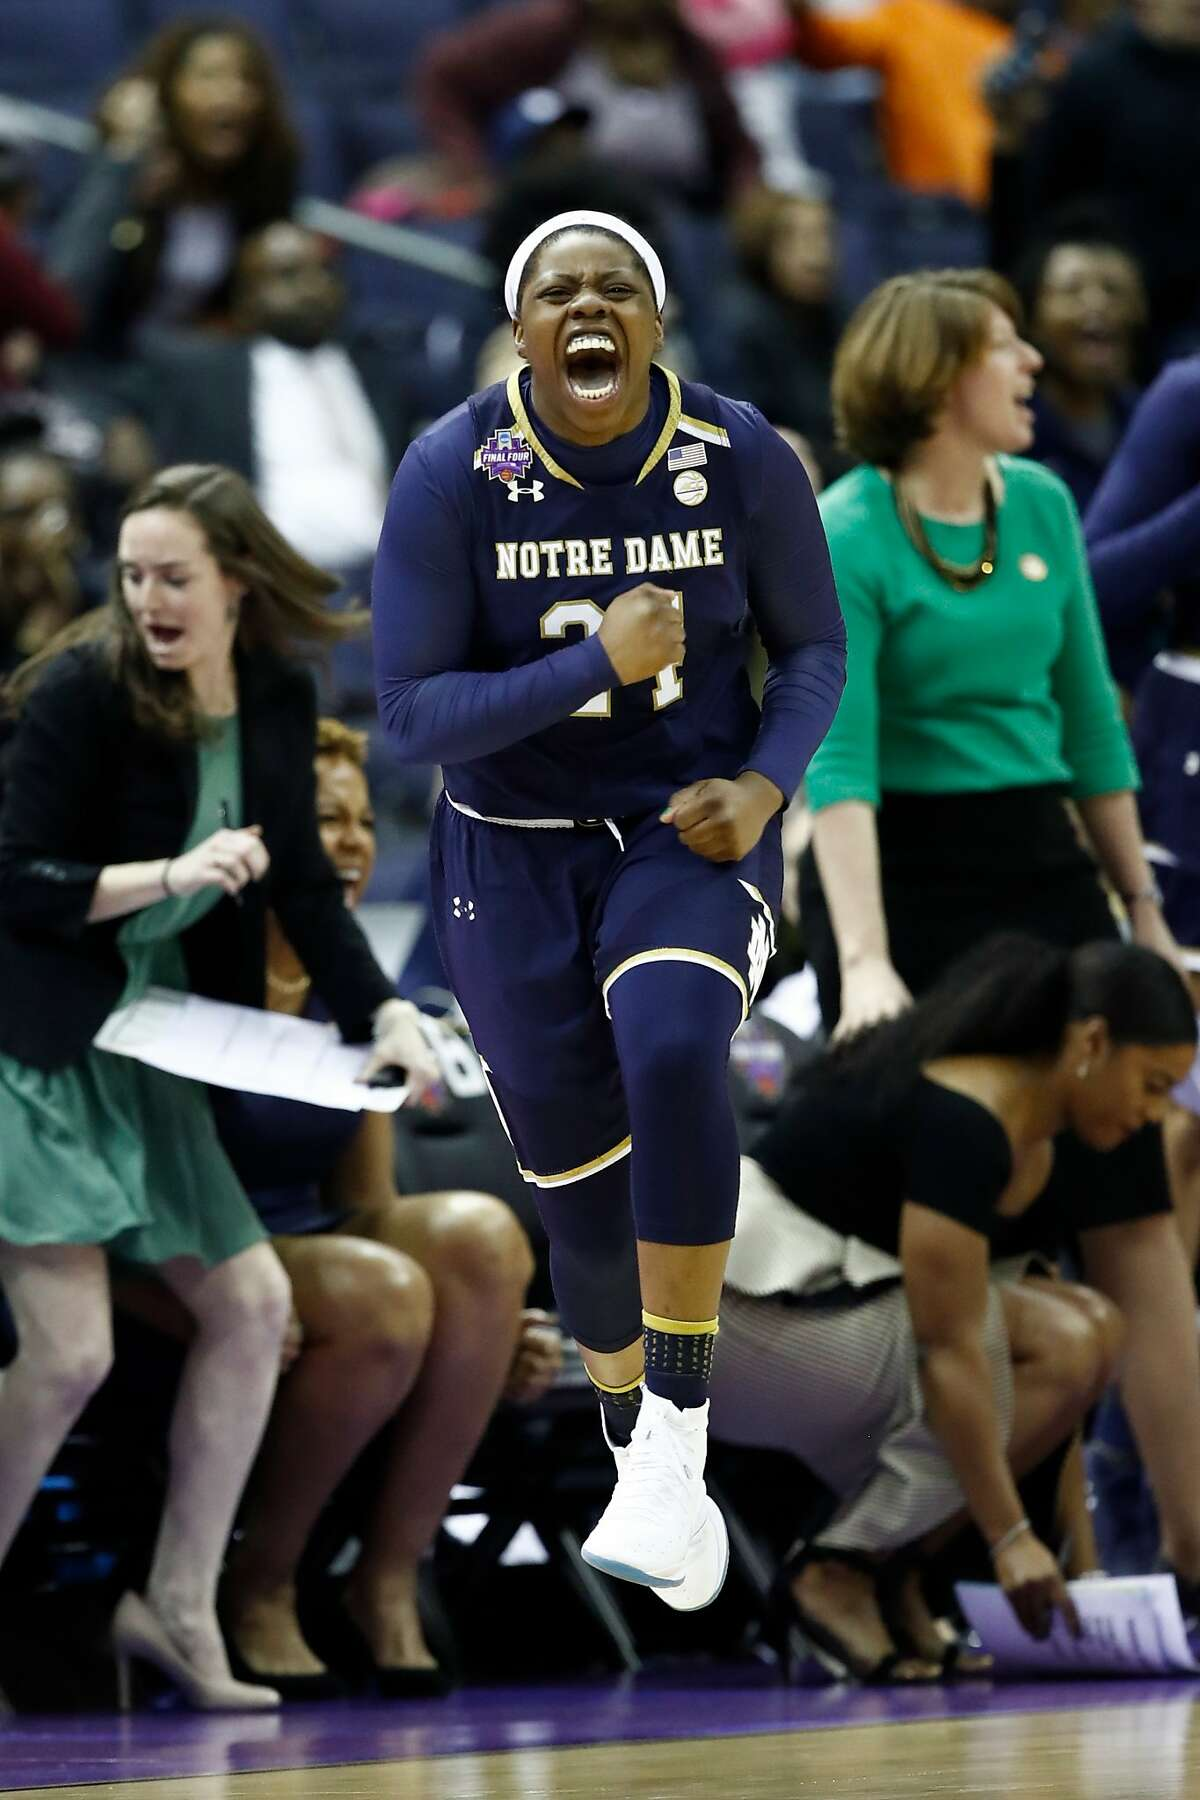 Arike Ogunbowale, G, Notre Dame Like Ionescu, Arike Ogunbowale has the tenacity and fire to simply take over a game, something she flashed with her jaw-dropping buzzer-beater to win last year's NCAA Tournament. She's continued her dominance in her senior season, averaging a whopping 21.5 PPG while shooting 45 percent from the field. With nearly five rebounds and four assists per contest, Ogunbowale is a prolific scorer and all-around player. Teams love athletes with her skillset - and ones with her passion doubly so.